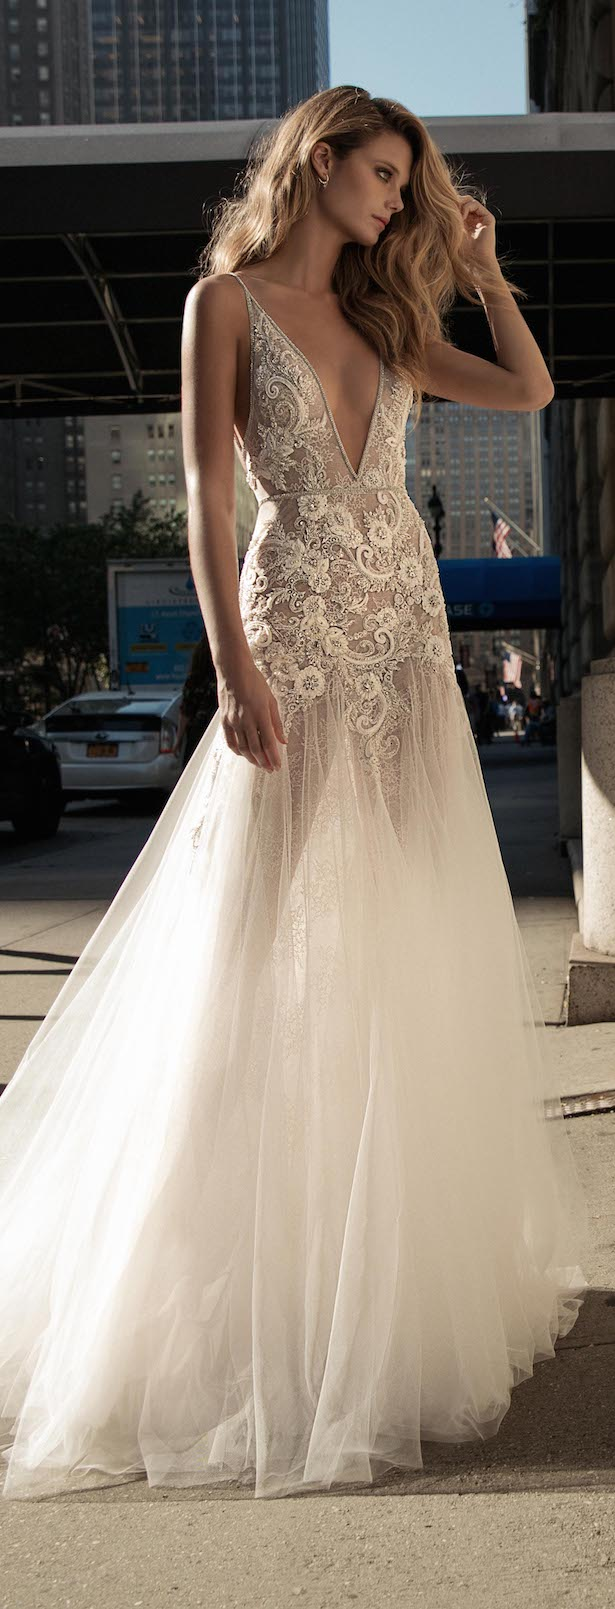 Wedding Outfit Ideas 2017 : Berta bridal fall collection belle the magazine